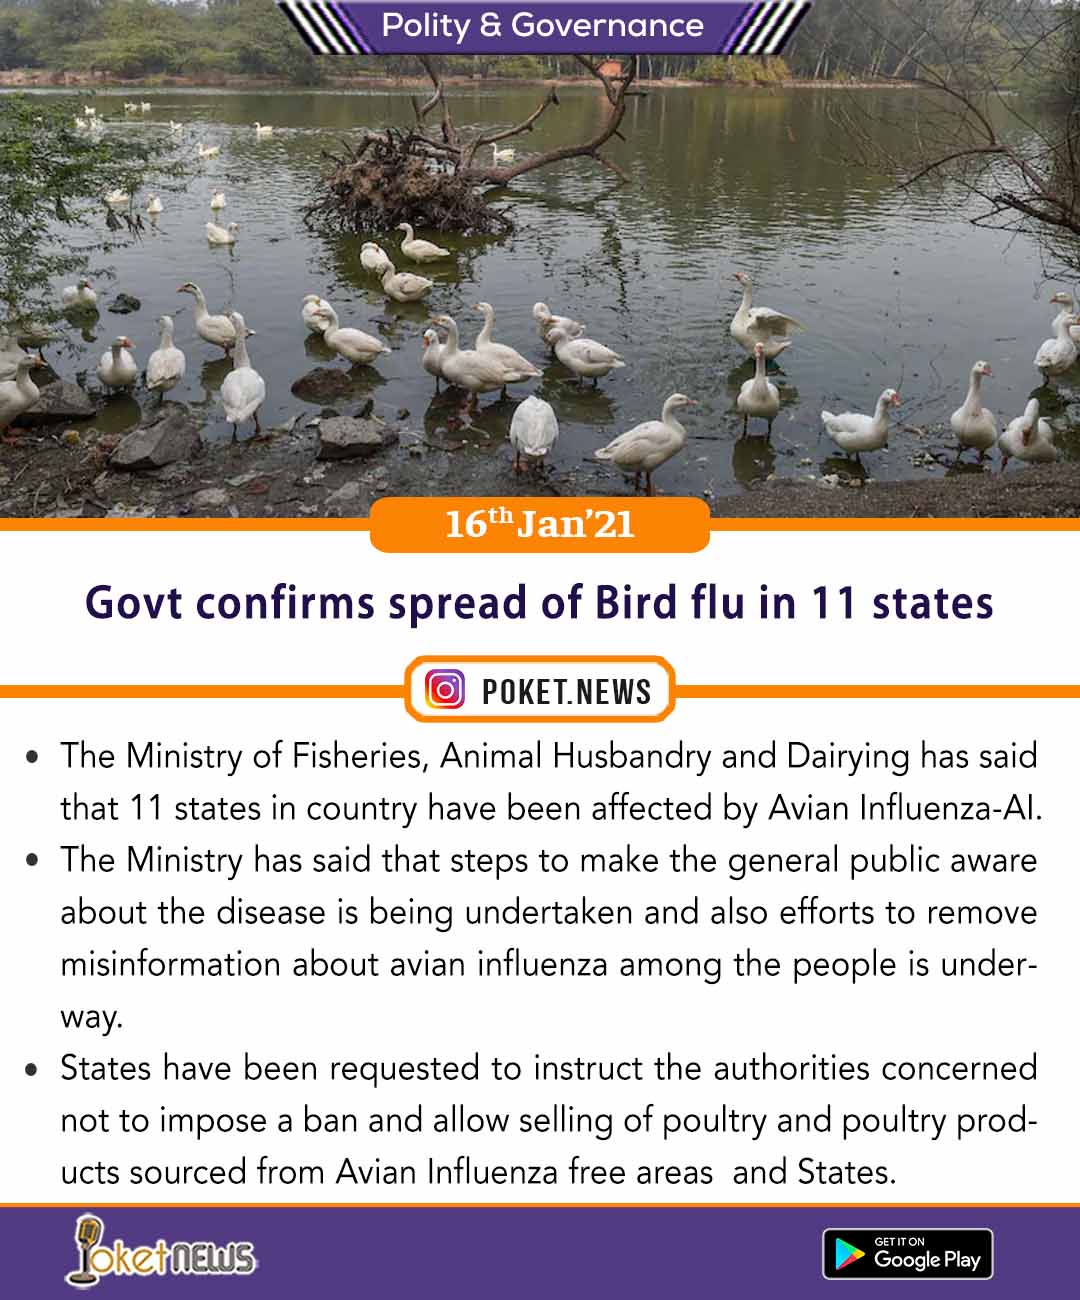 Govt confirms spread of Bird flu in 11 states